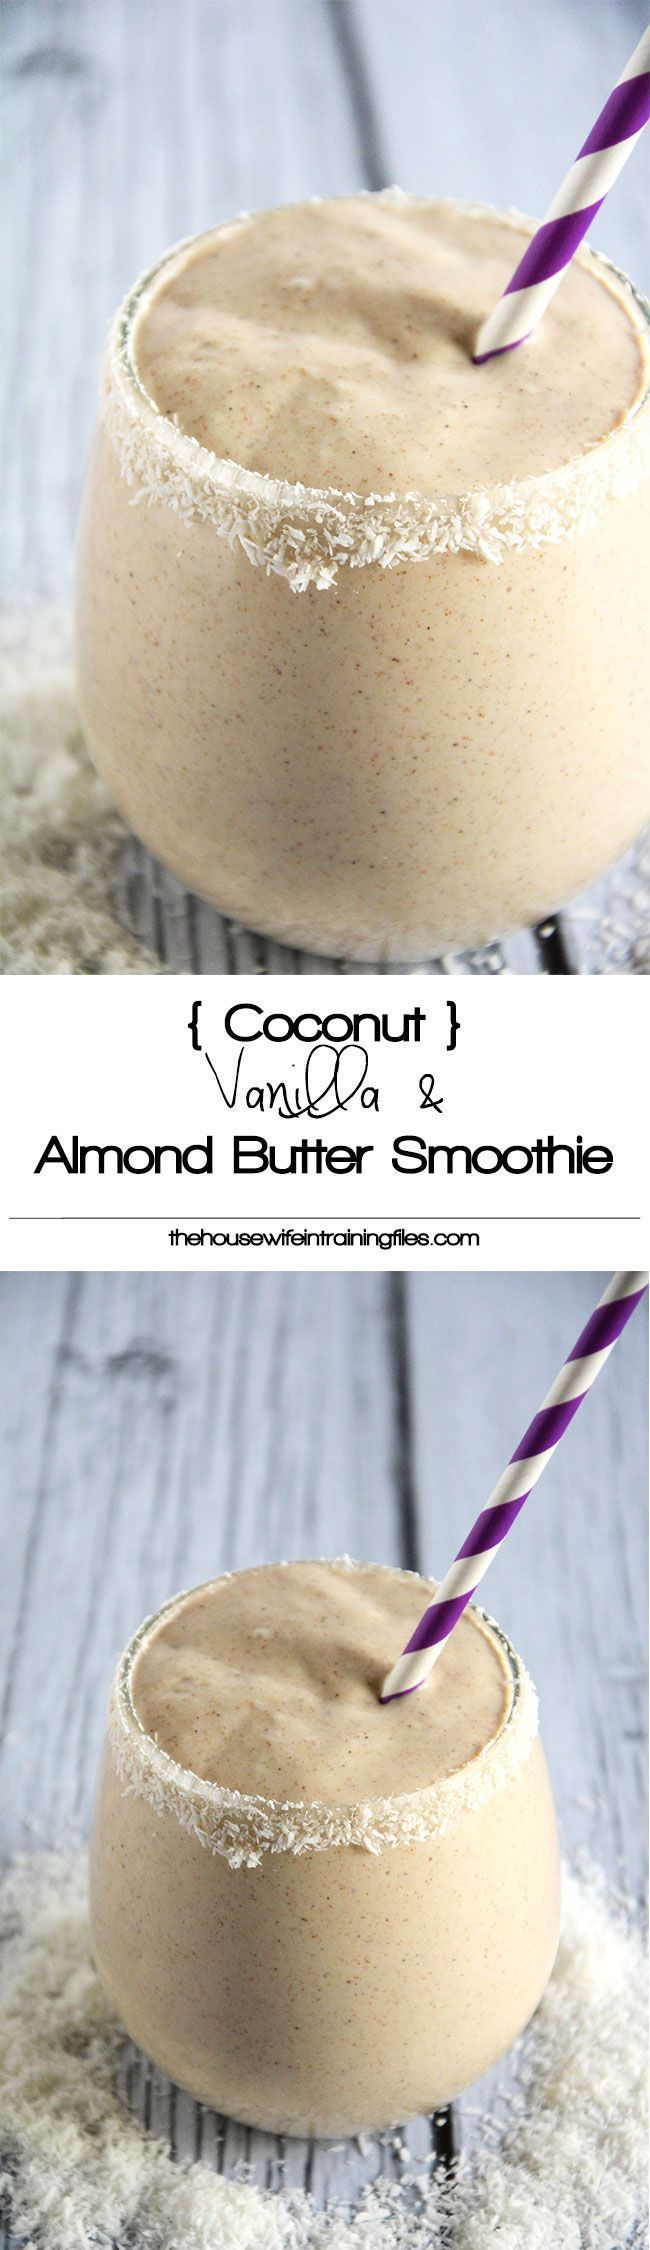 Almond Butter Smoothie, Healthy, Recipes, Paleo, Protein Shake, Coconut, Whole 30, Low Carb, Dairy Free, Clean Eating, Stevia